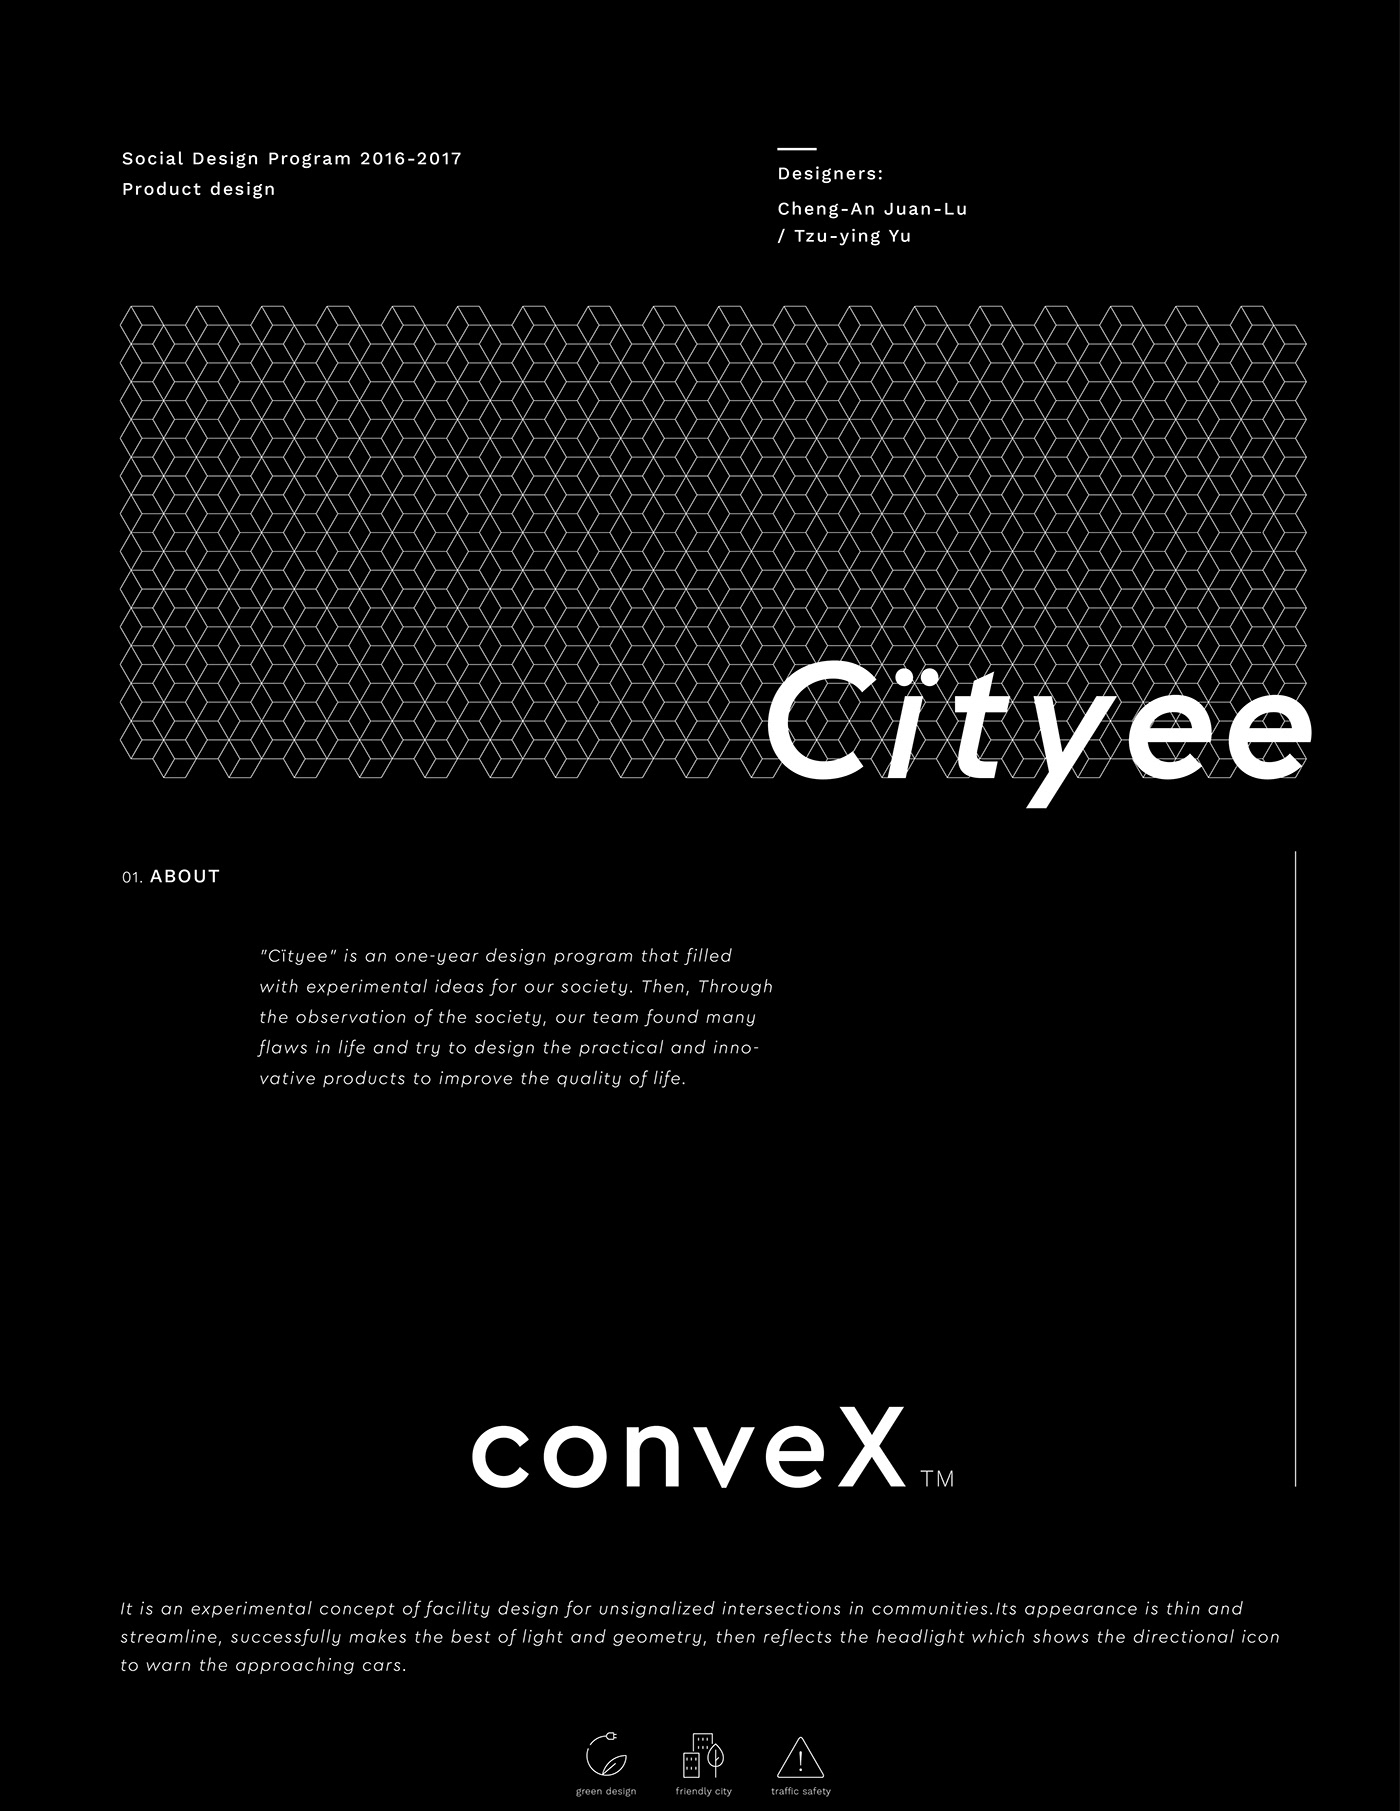 conveX - Social product design on Behance